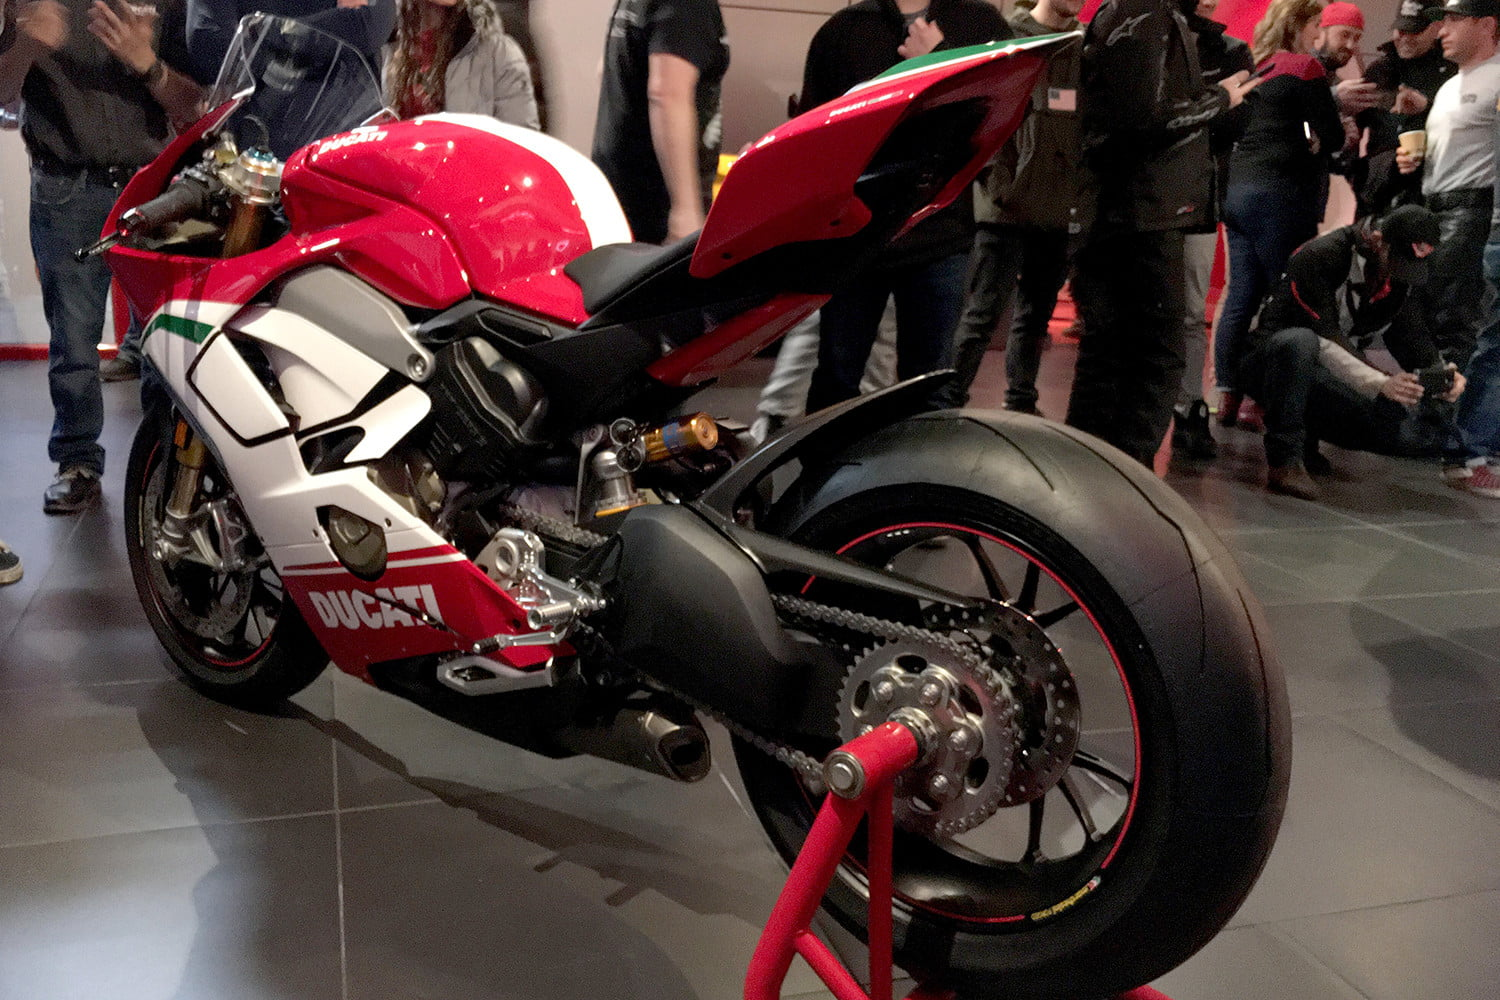 ducati 2018 motorcycle preview panigale v4 speciale rearprofile